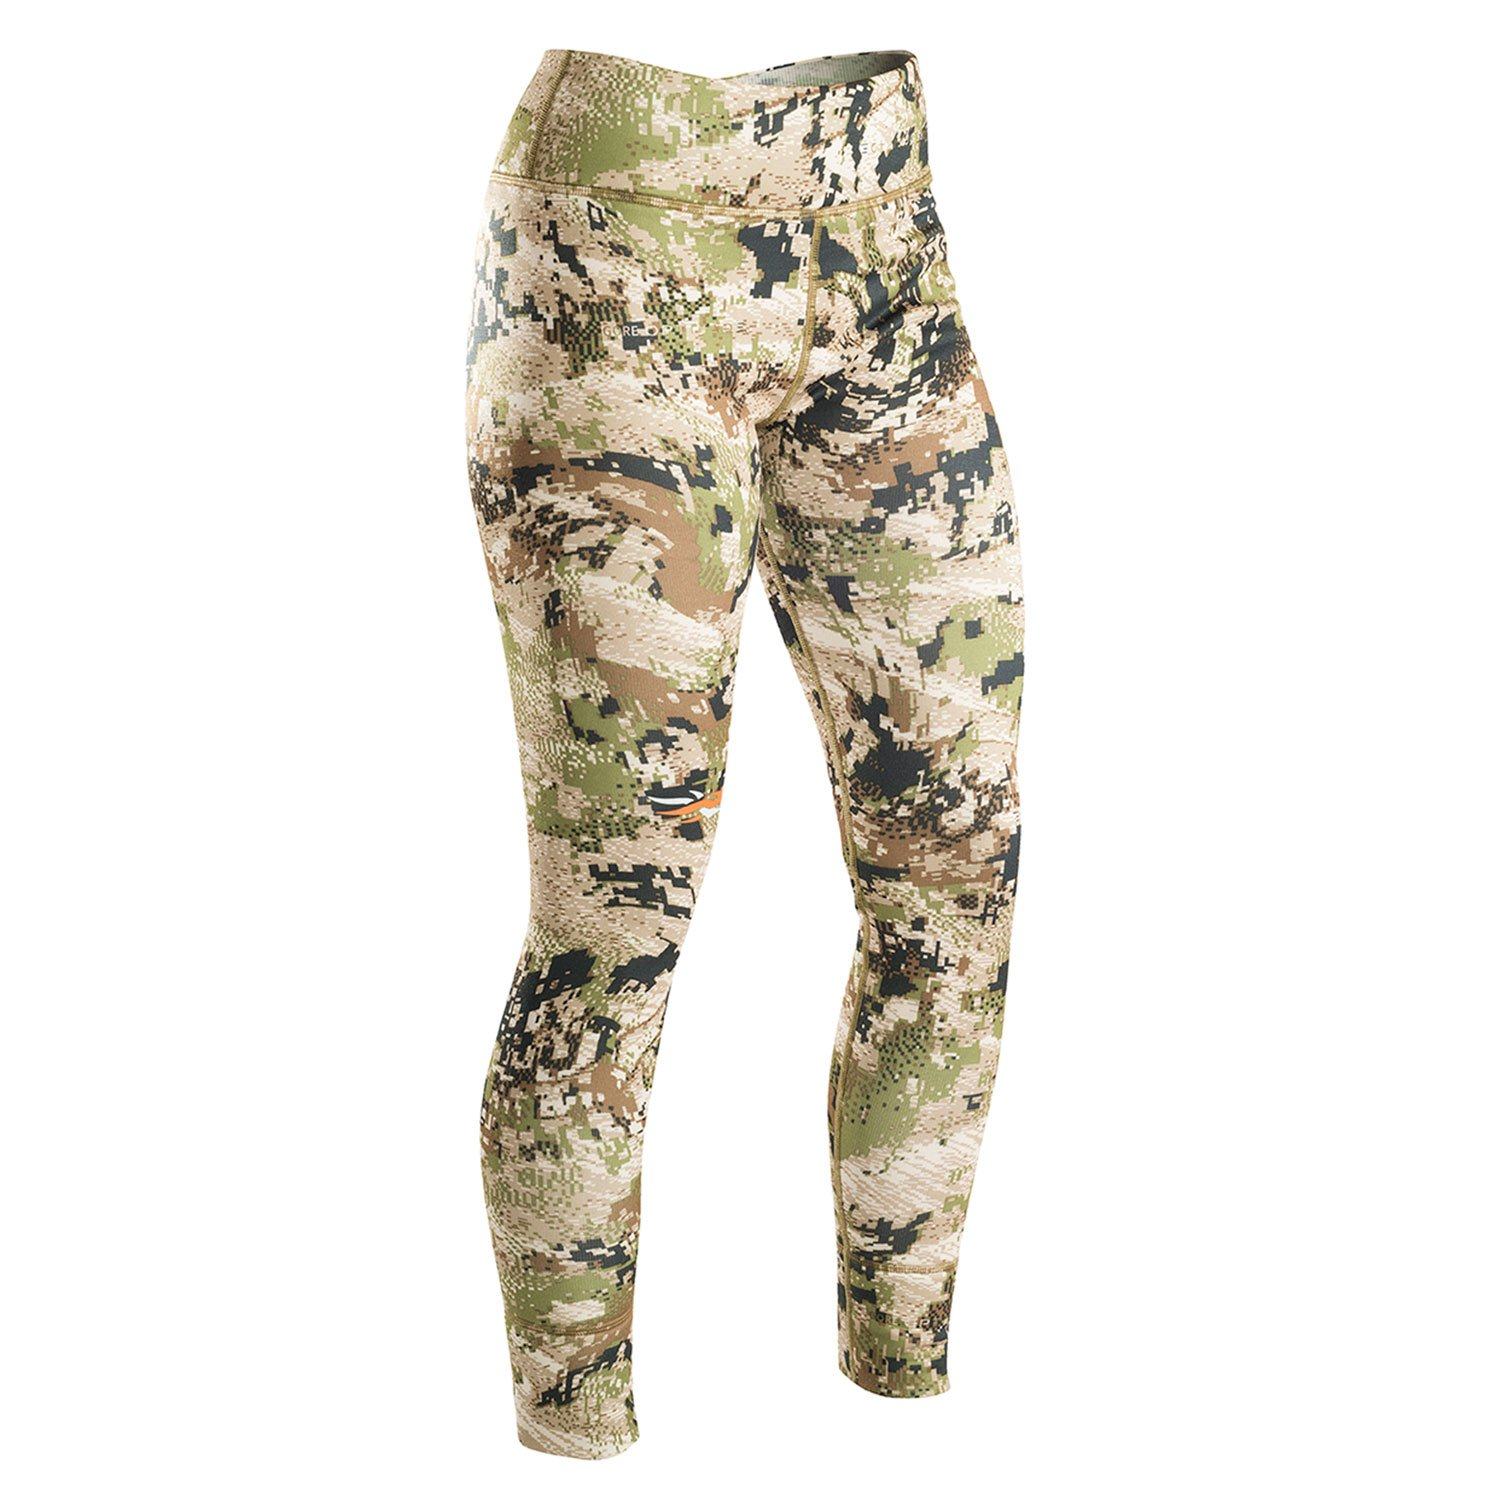 SITKA Gear Core Midweight Bottom Optifade Subalpine X Large - Discontinued by SITKA